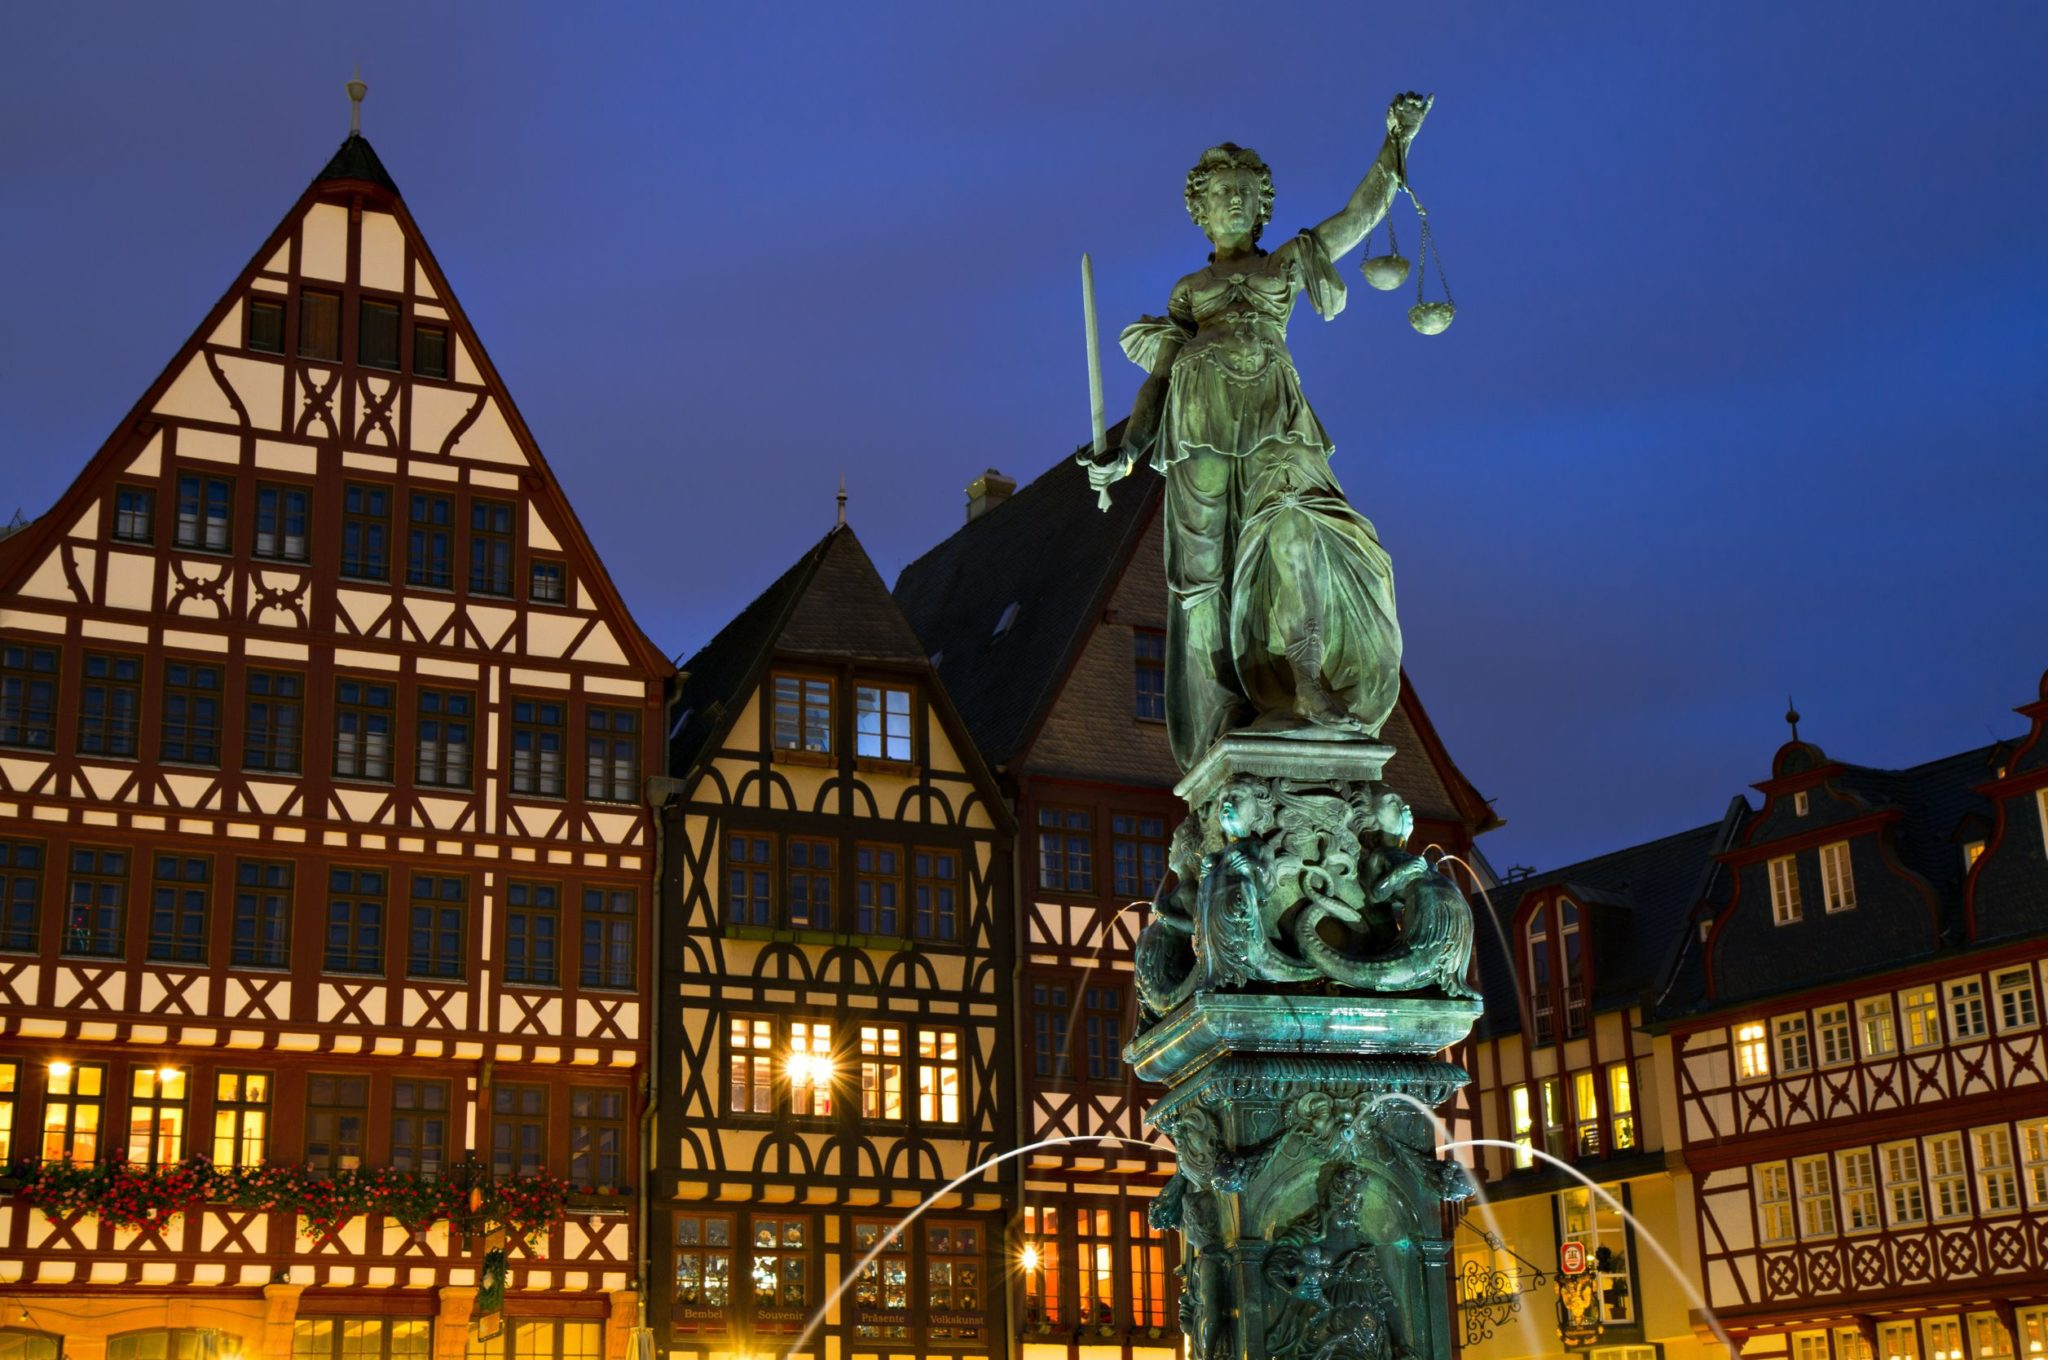 Medieval Timberframe houses and Lady Justice in Frankfurt, Germany